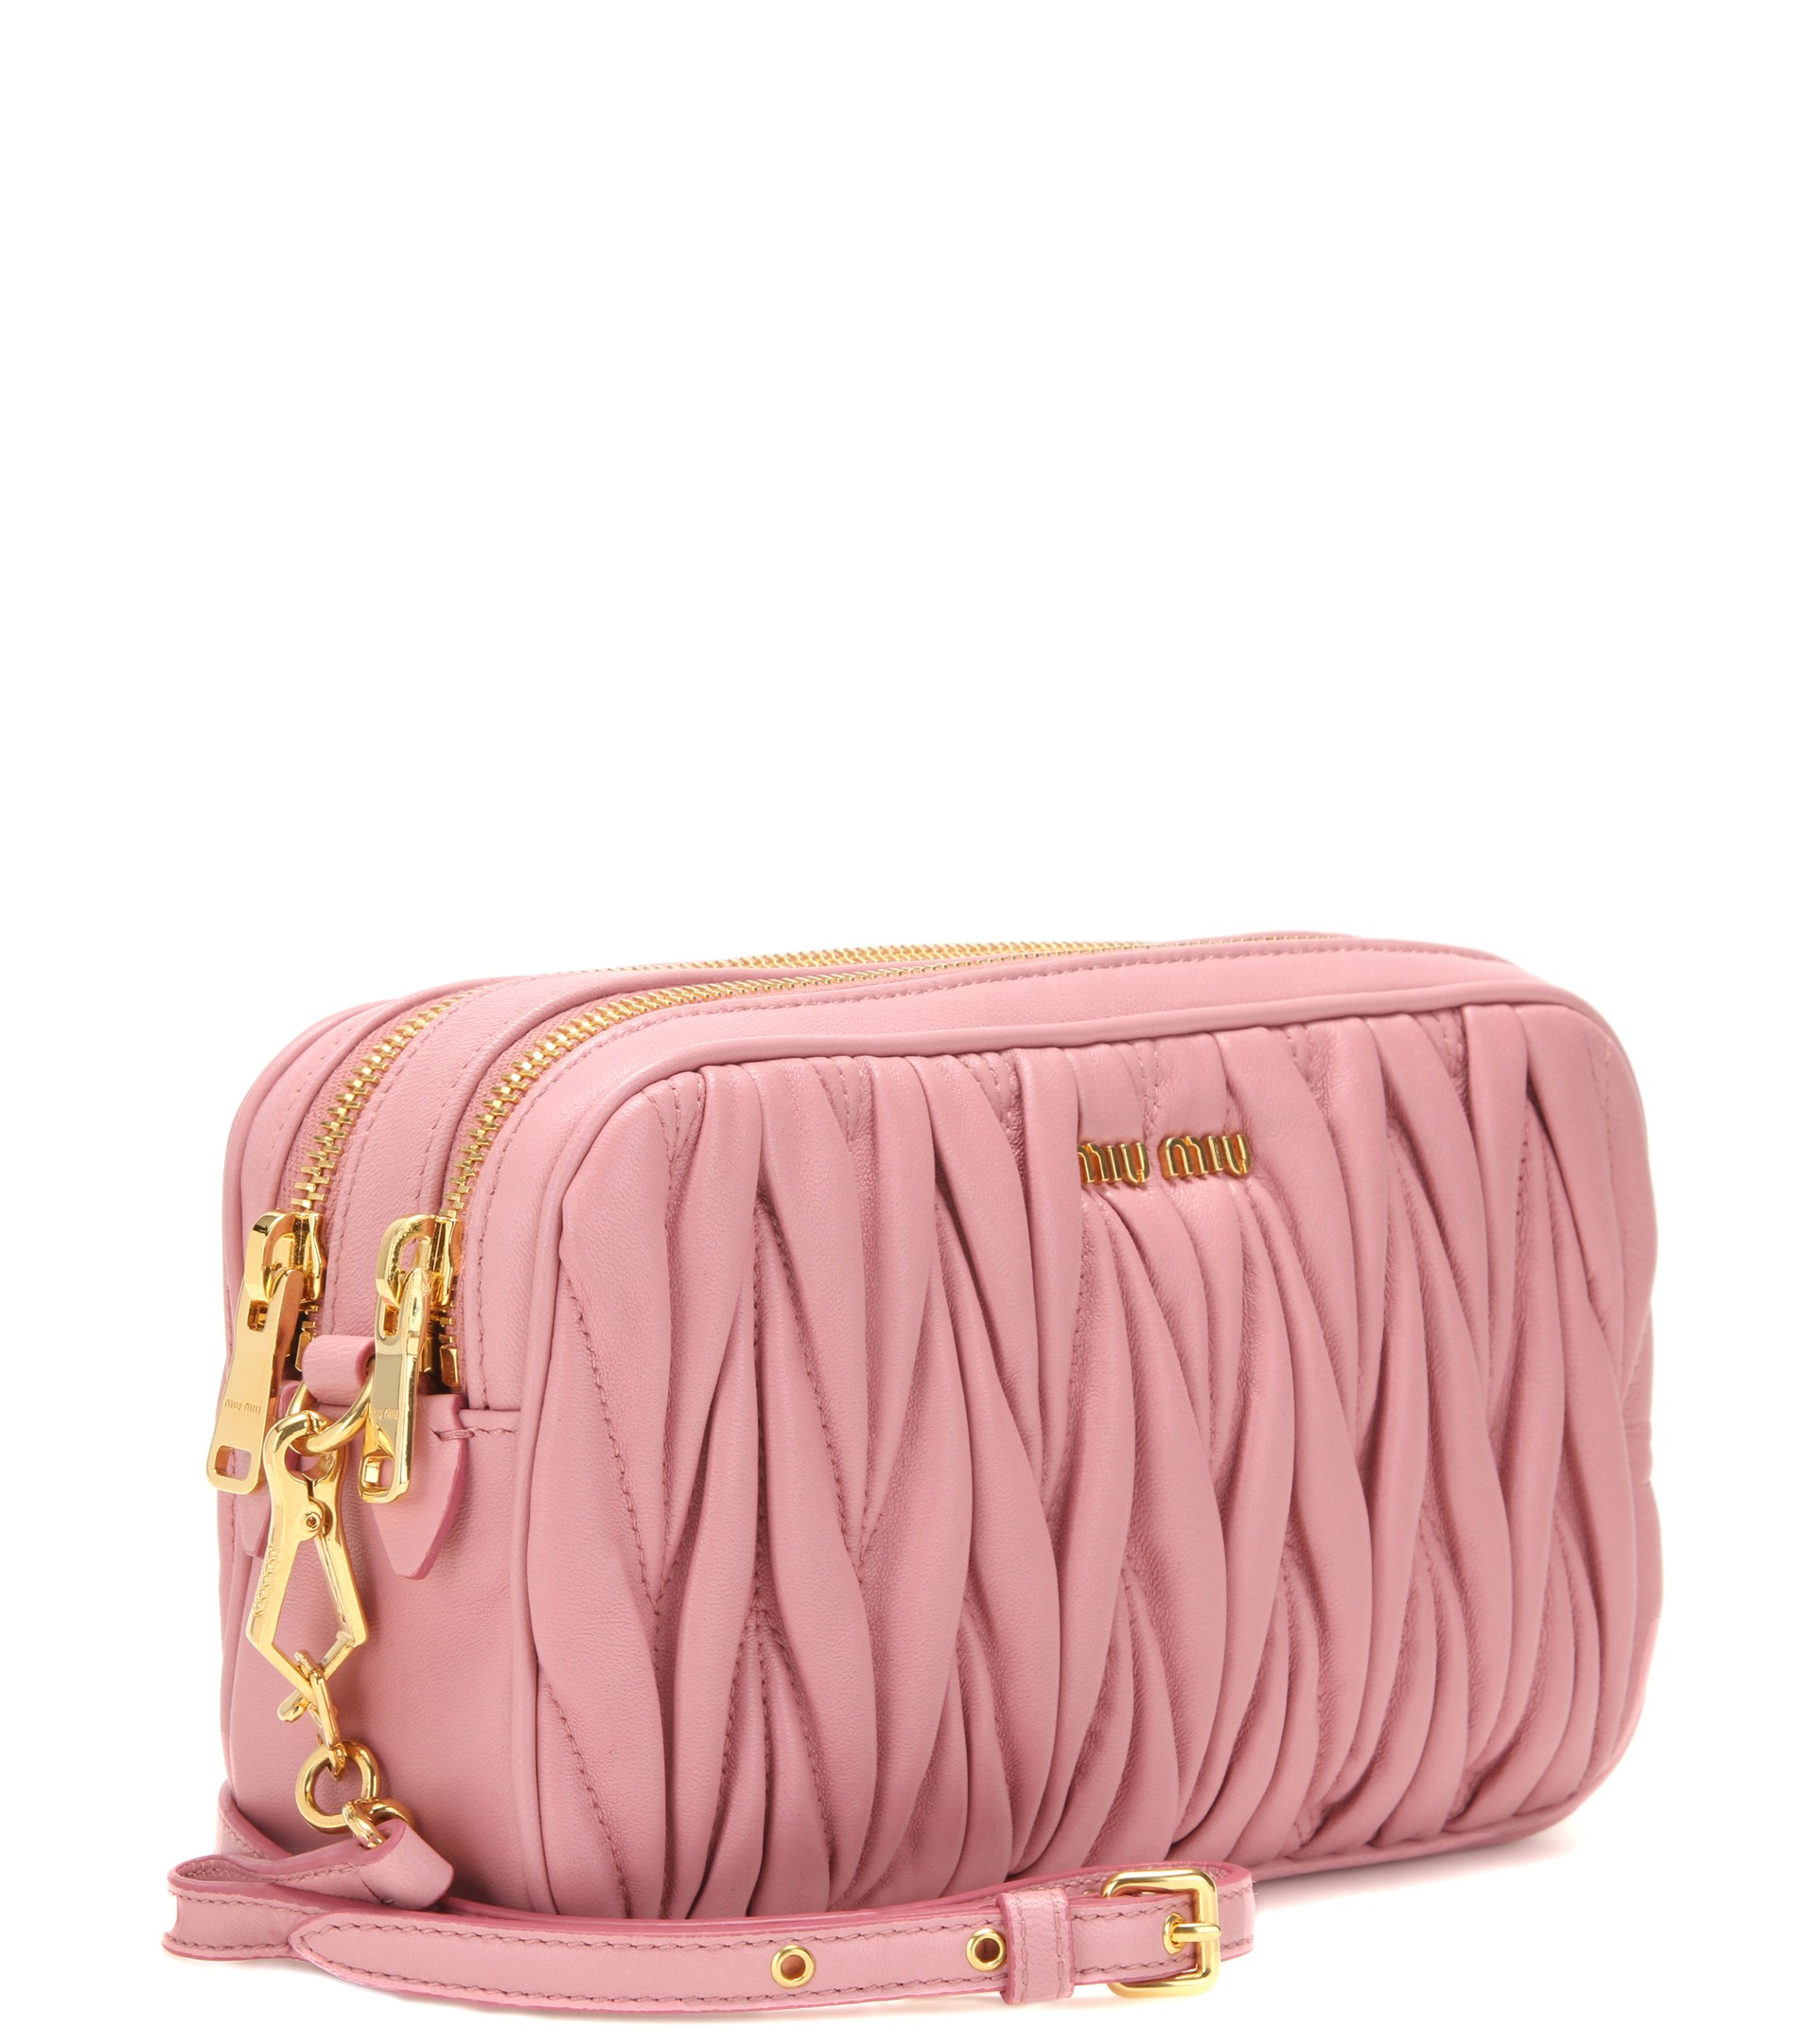 bf35b9a76737 Miu Miu Matelassé Leather Shoulder Bag in Pink - Lyst